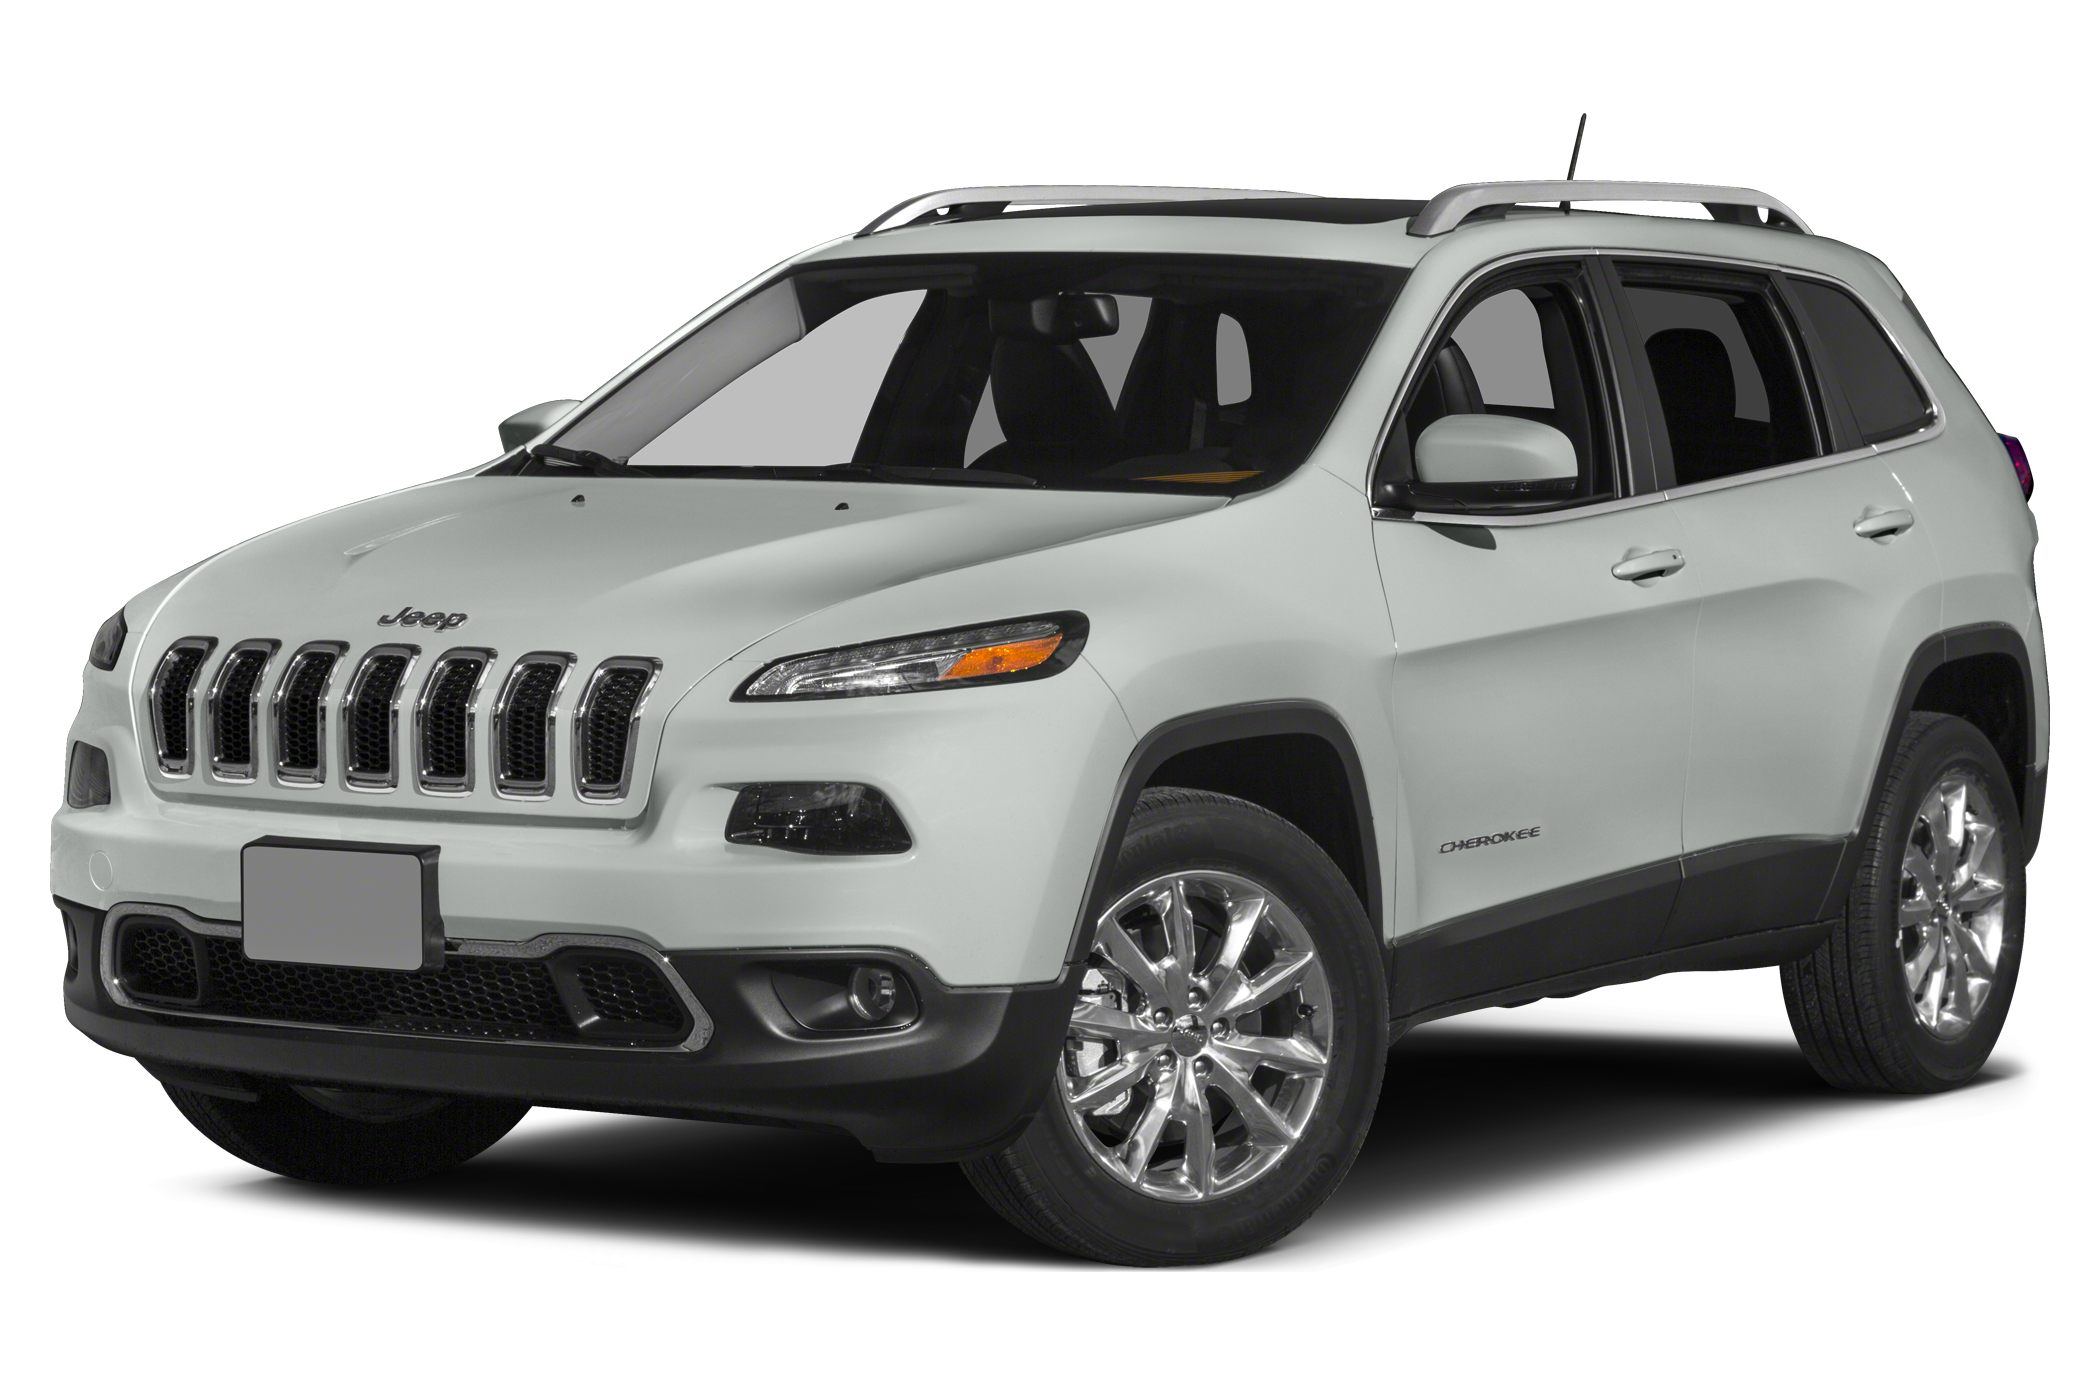 2015 Jeep Cherokee Latitude SUV for sale in Webster for $32,665 with 2 miles.